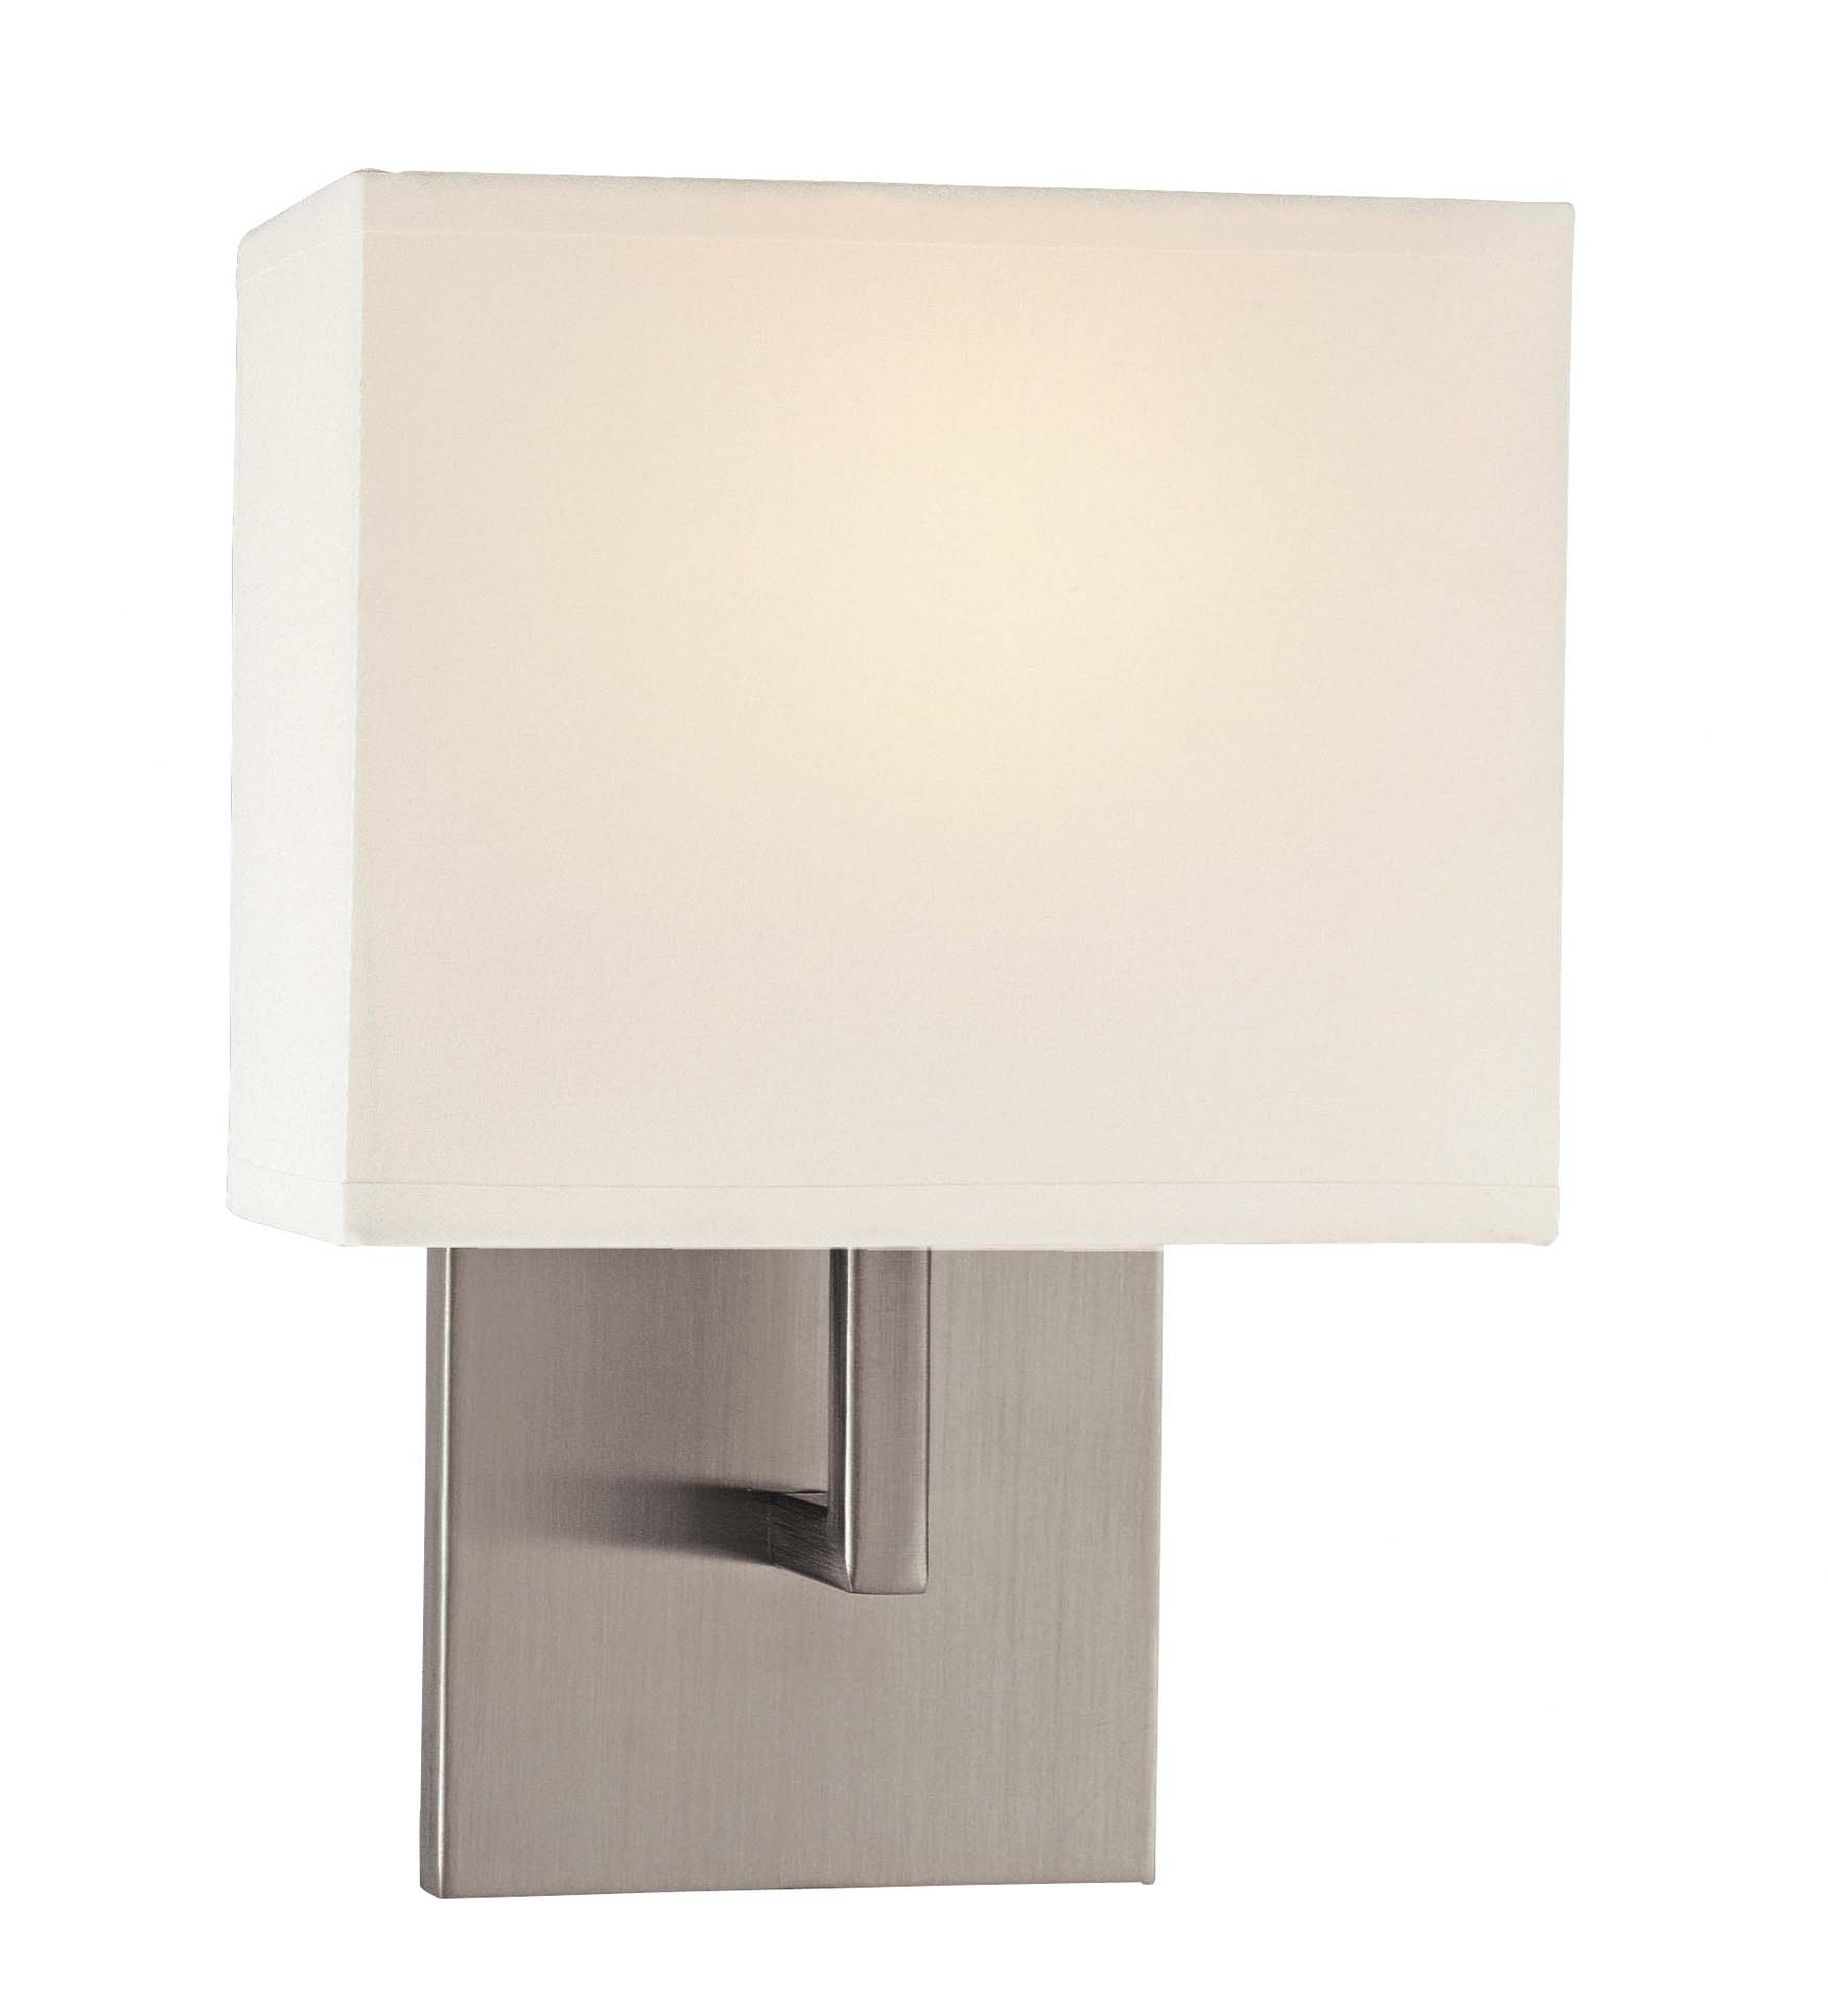 George kovacs by minka bath art vanity light with case etched opal - George Kovacs By Minka 11 5 Wall Sconce In Brushed Nickel With White Fabric Shade